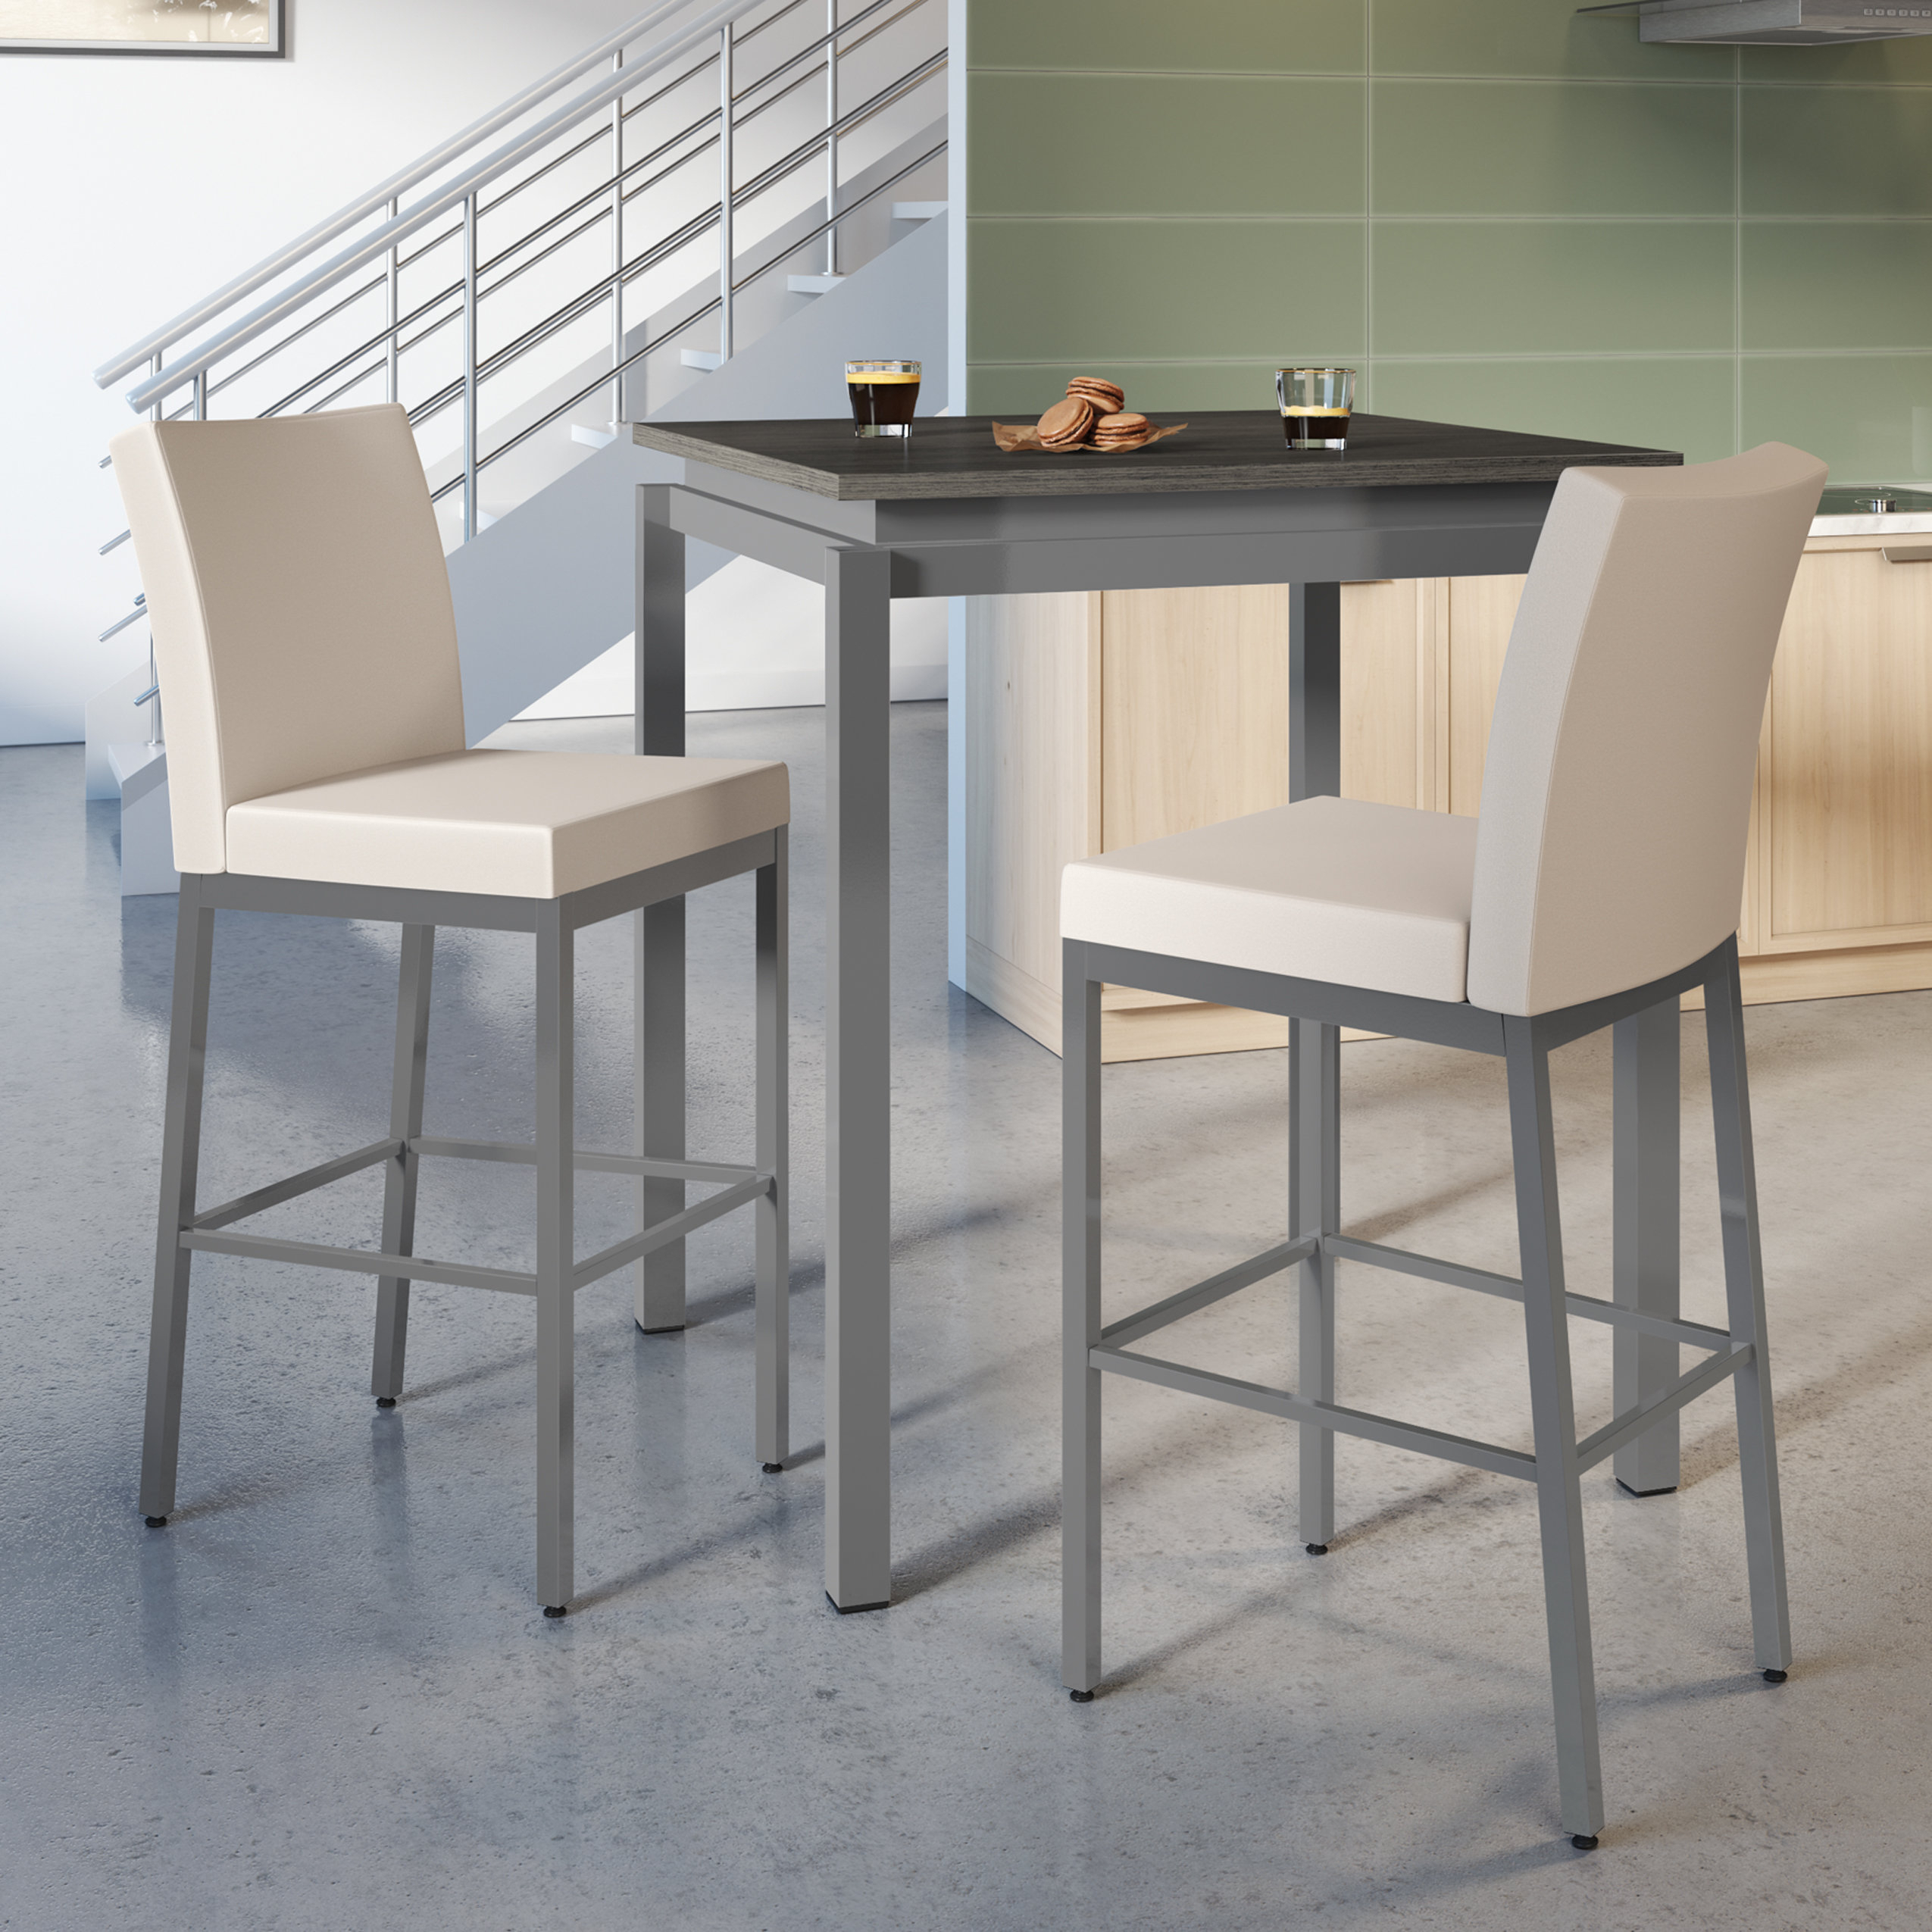 Wayfair Pertaining To Cincinnati 3 Piece Dining Sets (View 9 of 20)